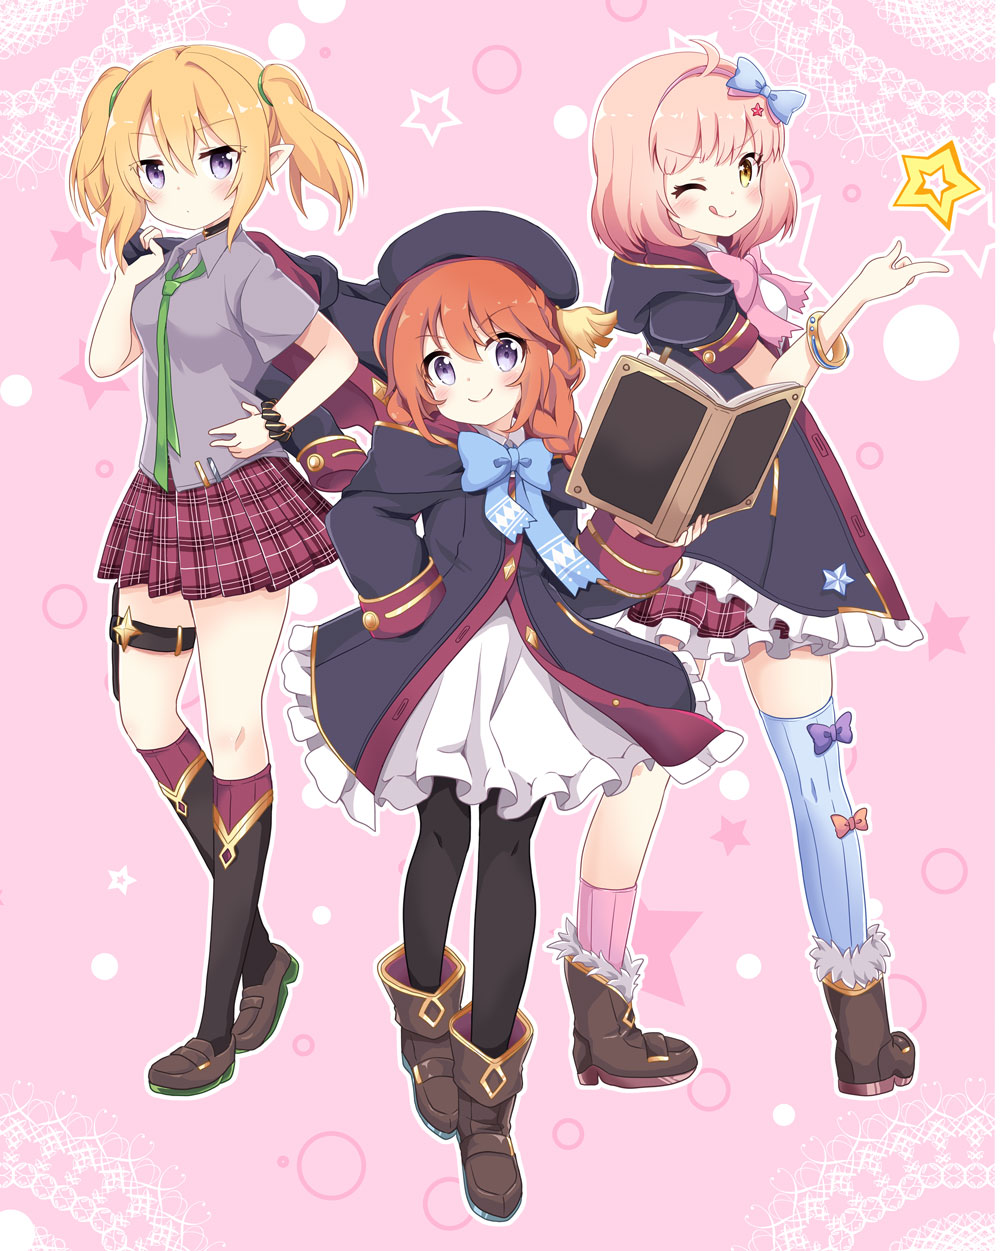 >:) 3girls ;q asymmetrical_legwear bangs beret black_coat black_headwear black_legwear black_scrunchie blonde_hair blue_legwear blush book boots braid breasts brown_eyes brown_footwear brown_hair chieru_(princess_connect!) chloe_(princess_connect!) closed_mouth coat collared_shirt commentary_request dress eyebrows_visible_through_hair grey_shirt hair_between_eyes hand_on_hip hand_up hat highres holding holding_book holding_jacket hood hood_down hooded_coat jacket jacket_over_shoulder kneehighs loafers long_hair long_sleeves massala multiple_girls one_eye_closed open_book pantyhose pink_background pink_hair pink_legwear plaid plaid_skirt pleated_skirt pointy_ears princess_connect! princess_connect!_re:dive red_skirt ribbed_legwear scrunchie shirt shoes short_sleeves single_sock single_thighhigh skirt sleeves_past_wrists small_breasts smile socks standing standing_on_one_leg star_(symbol) thigh-highs tongue tongue_out twin_braids twintails v-shaped_eyebrows violet_eyes white_dress wrist_scrunchie yuni_(princess_connect!)